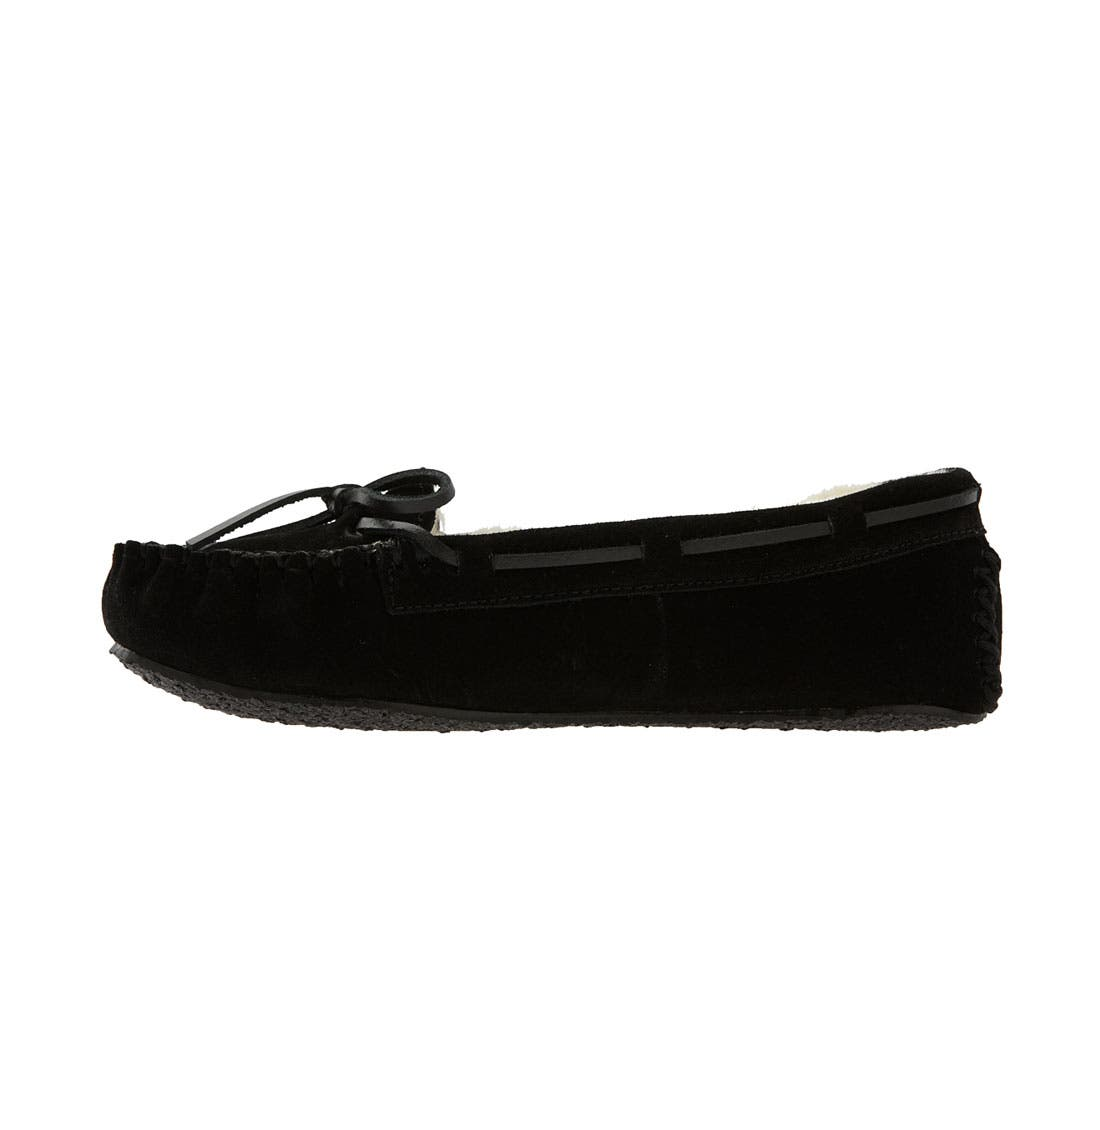 'Cally' Slipper,                             Alternate thumbnail 8, color,                             BLACK SUEDE